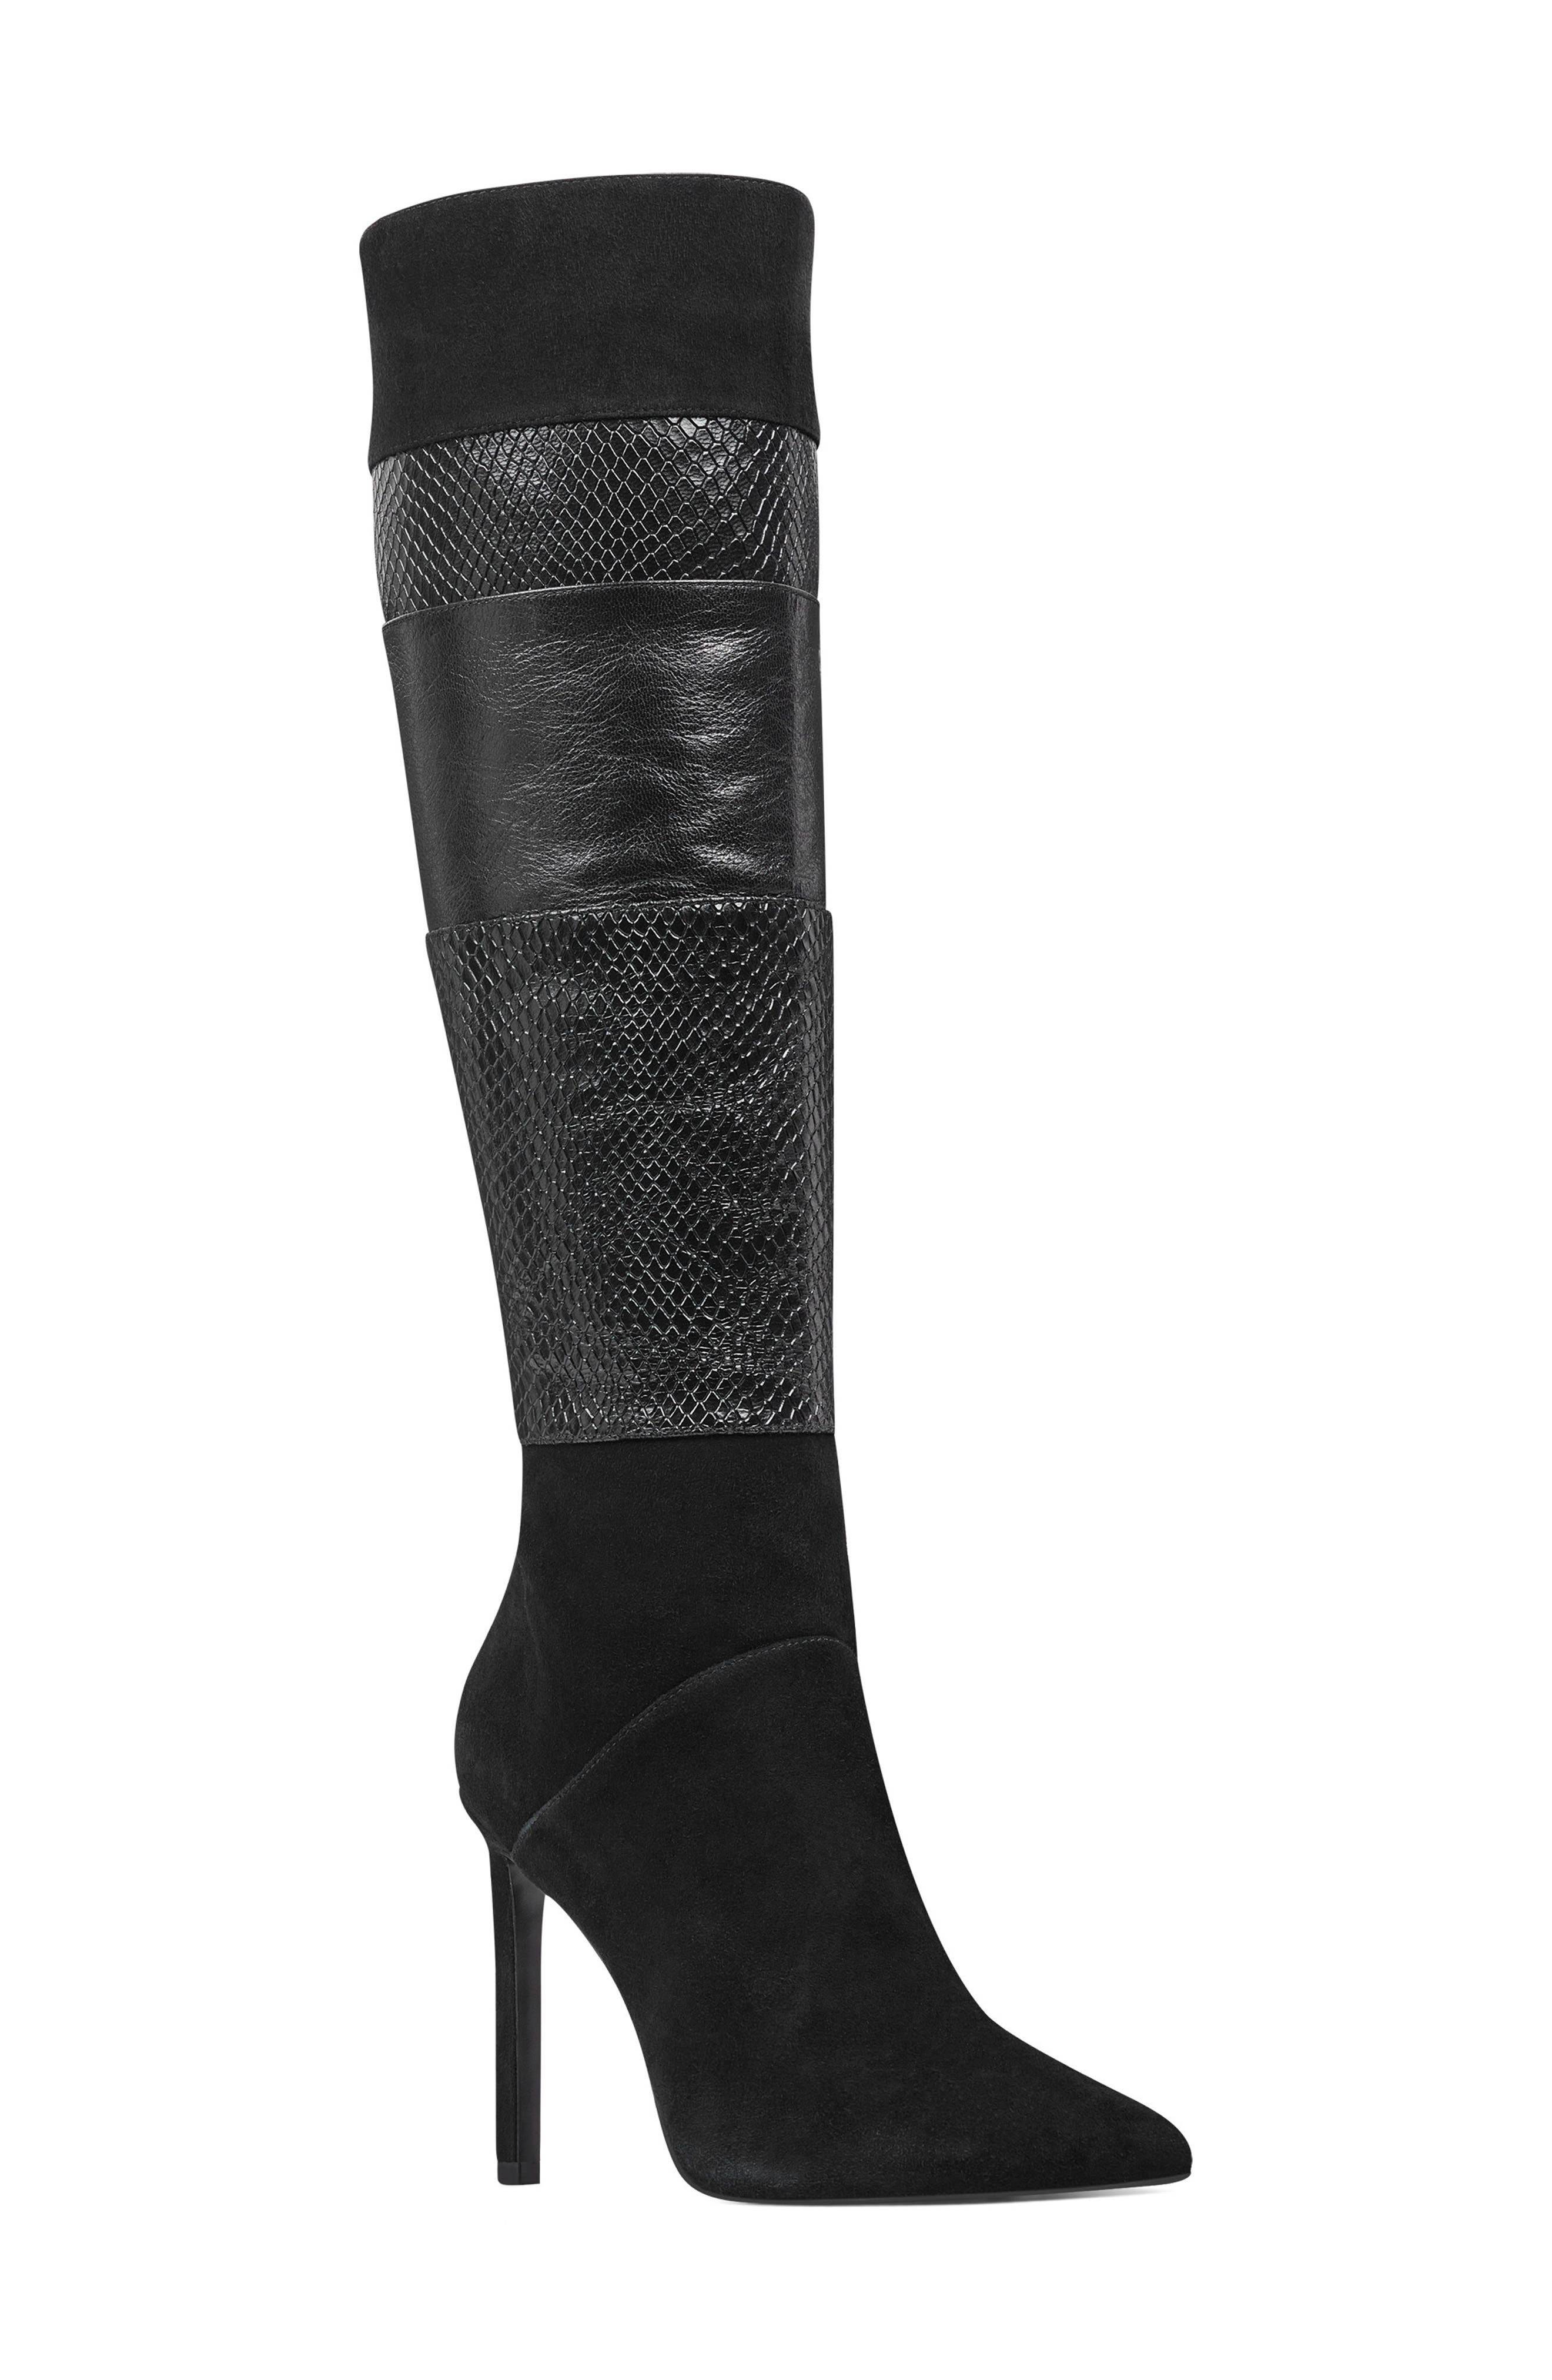 Toprank Blocked Knee High Boot,                             Main thumbnail 1, color,                             BLACK SUEDE